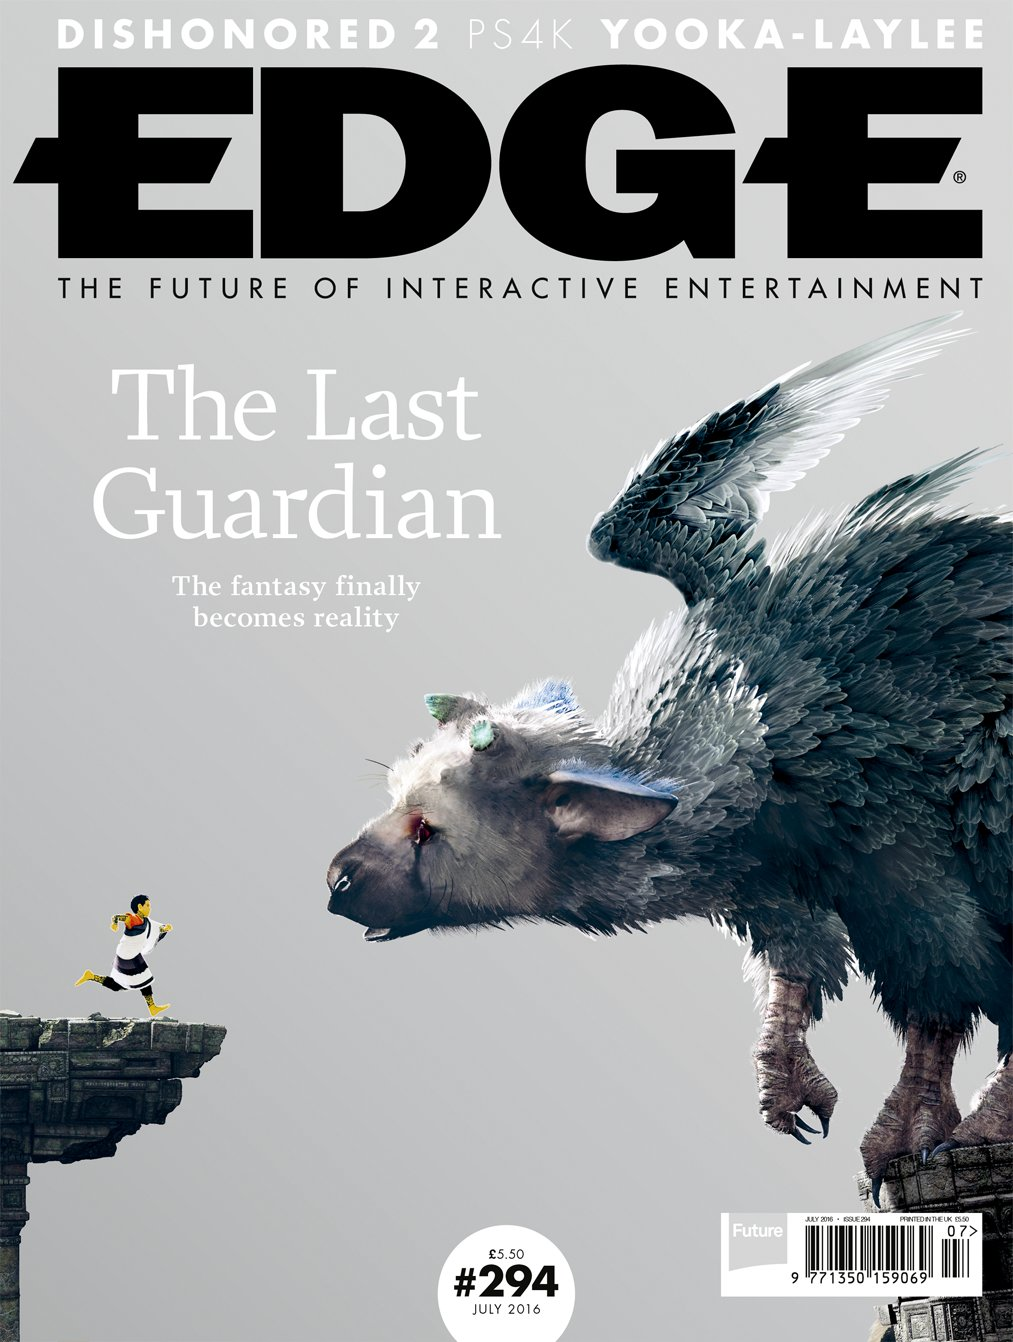 the last guardian release